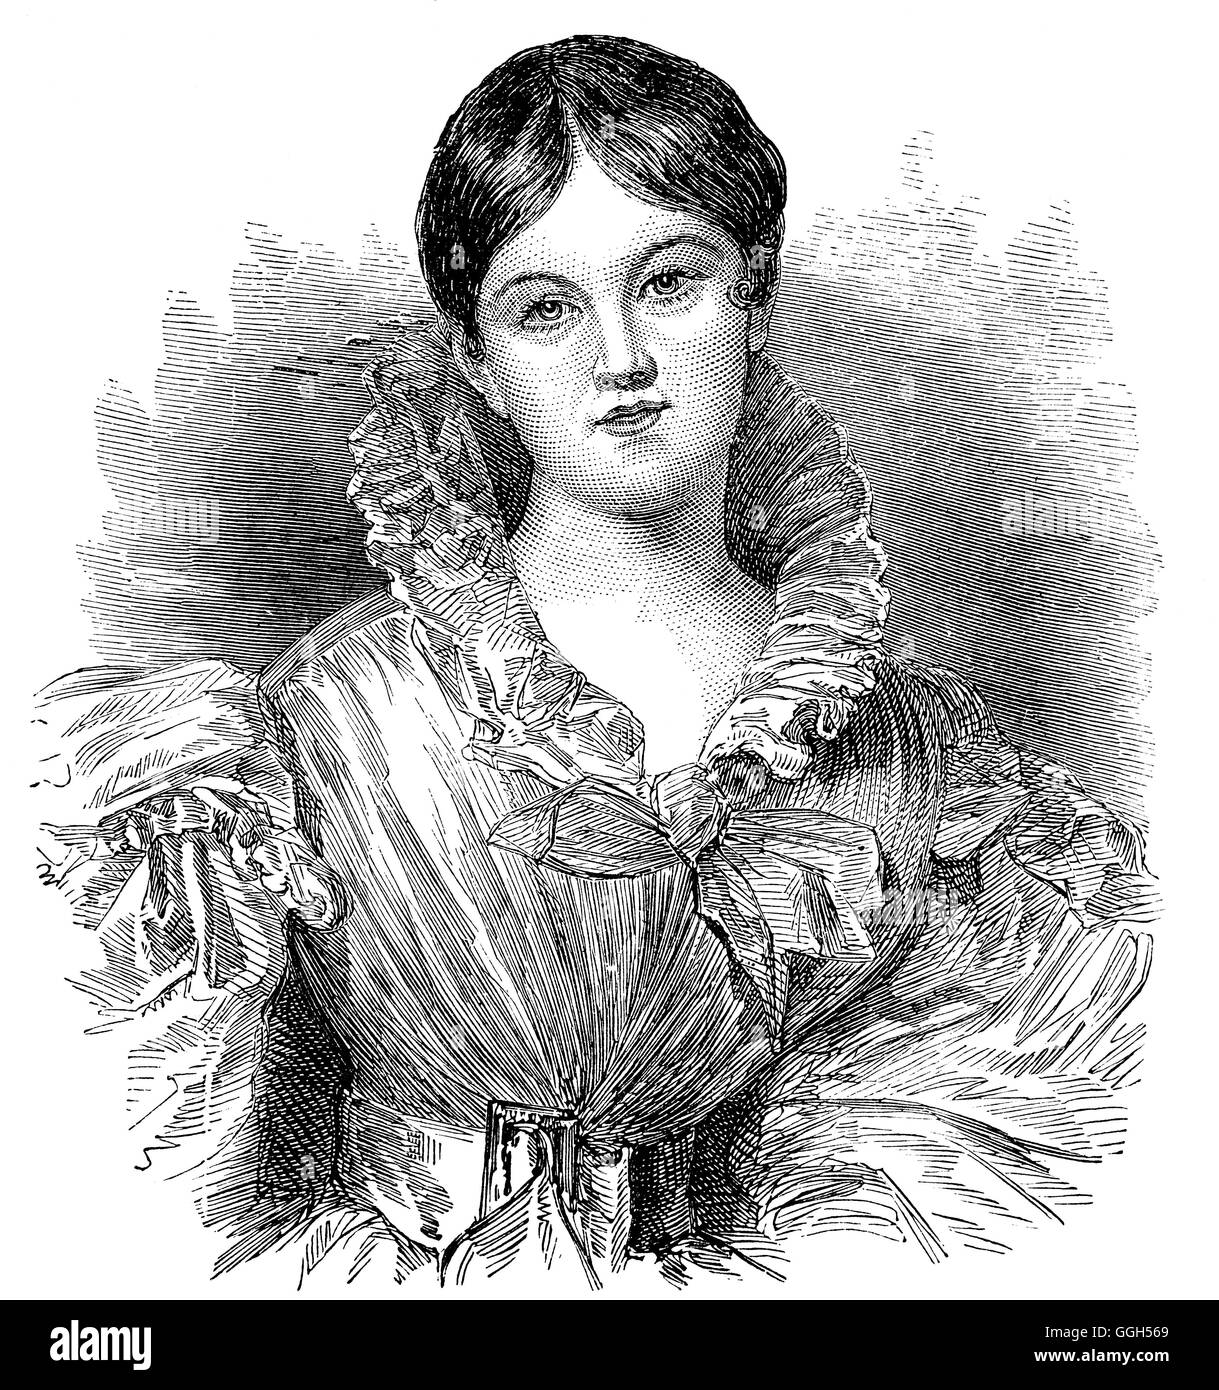 Letitia Elizabeth Landon (14 August 1802 – 15 October 1838), English poet and novelist  She was one of the first - Stock Image